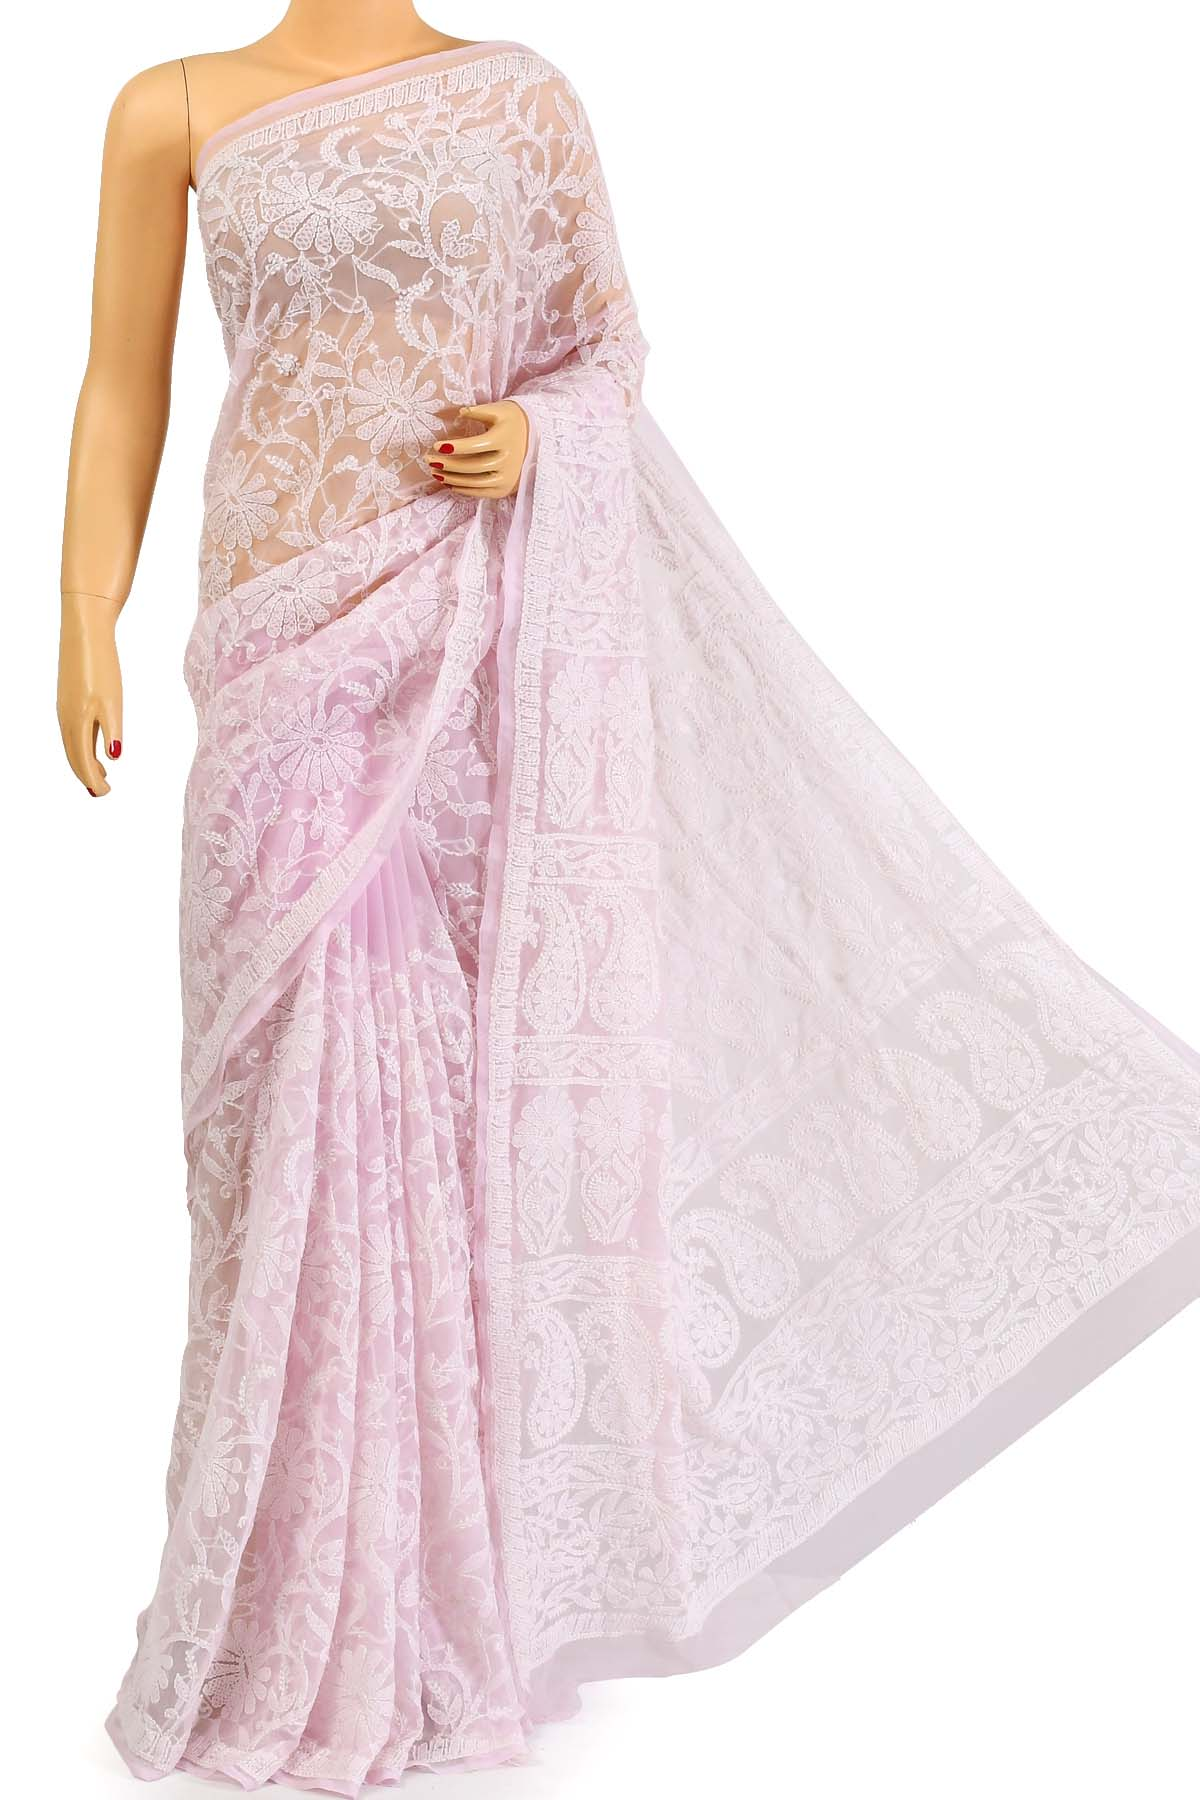 Babypink Color Allover Heavy Palla Hand Embroidered Lucknowi Chikankari Saree (With Blouse - Georgette) KC250689